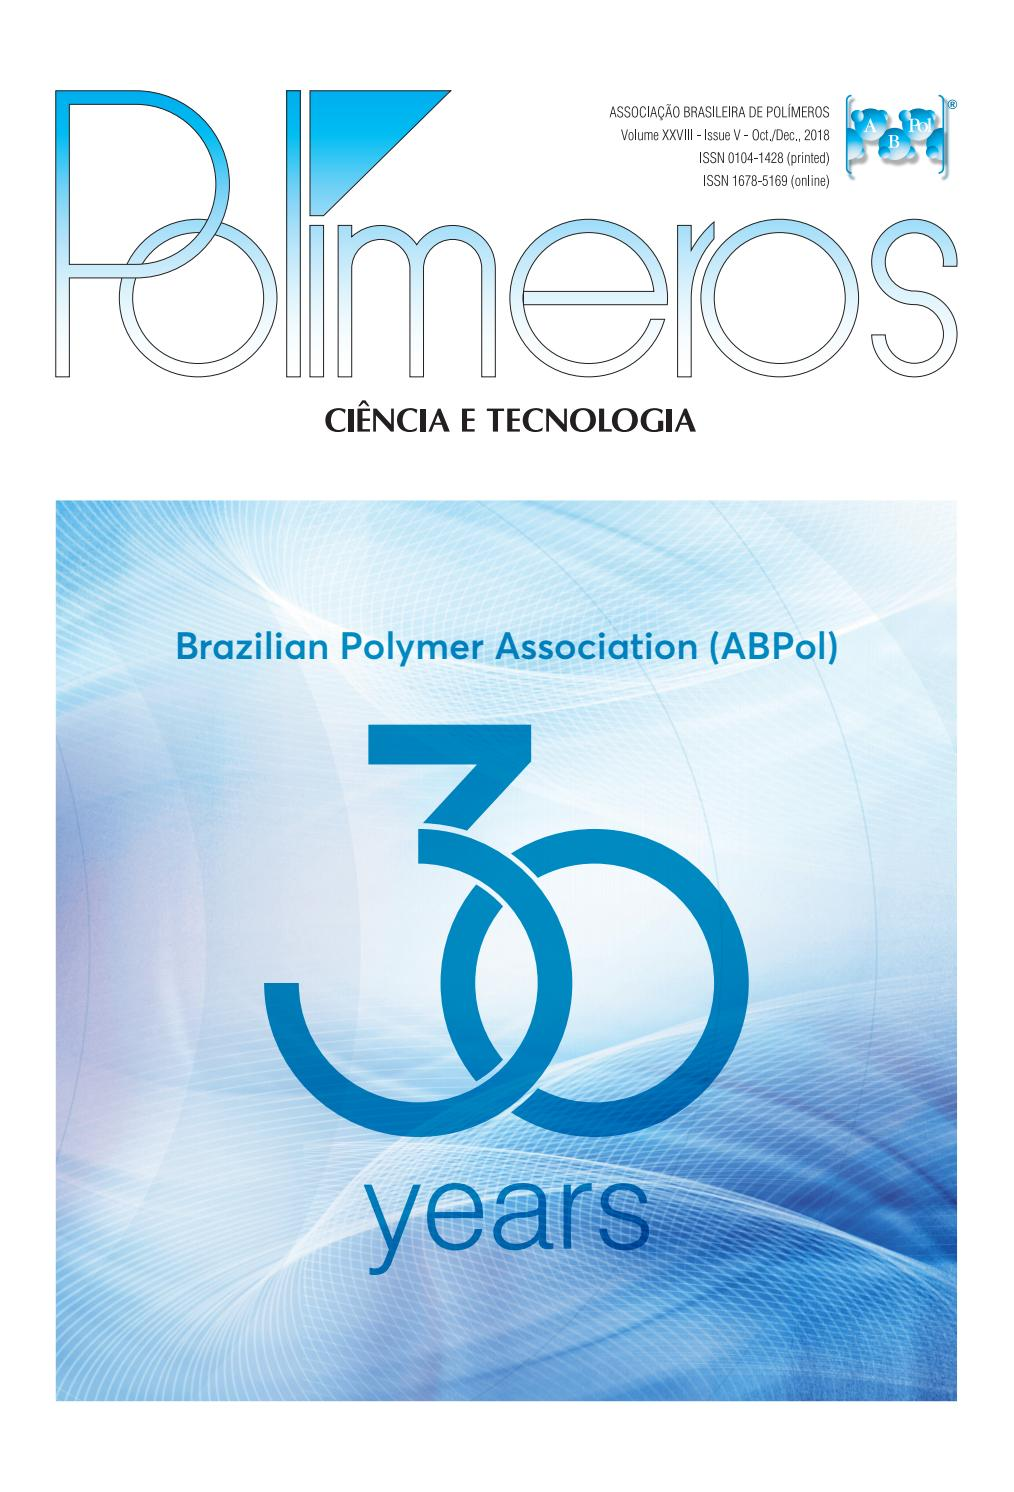 Polímeros: Ciência e Tecnologia 5th  issue, vol  28, 2018 by